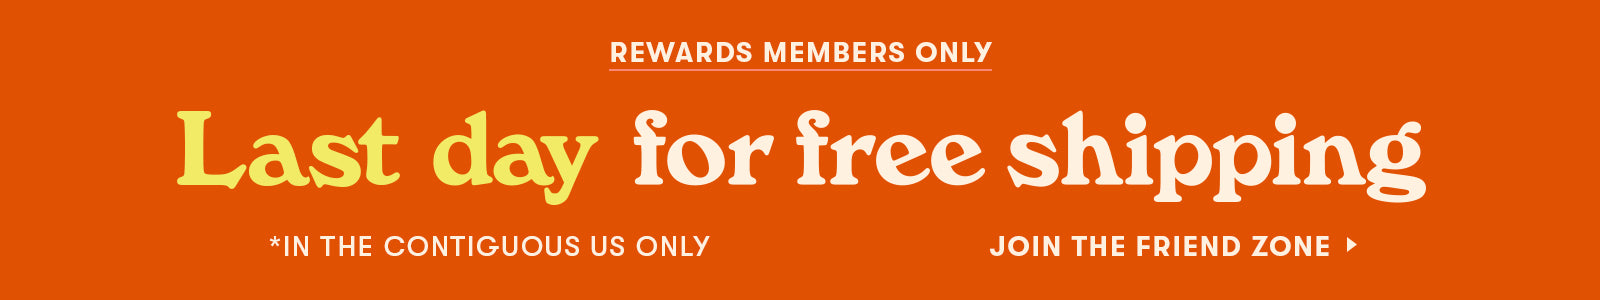 Free shipping for Friend Zone members thru 12/17!